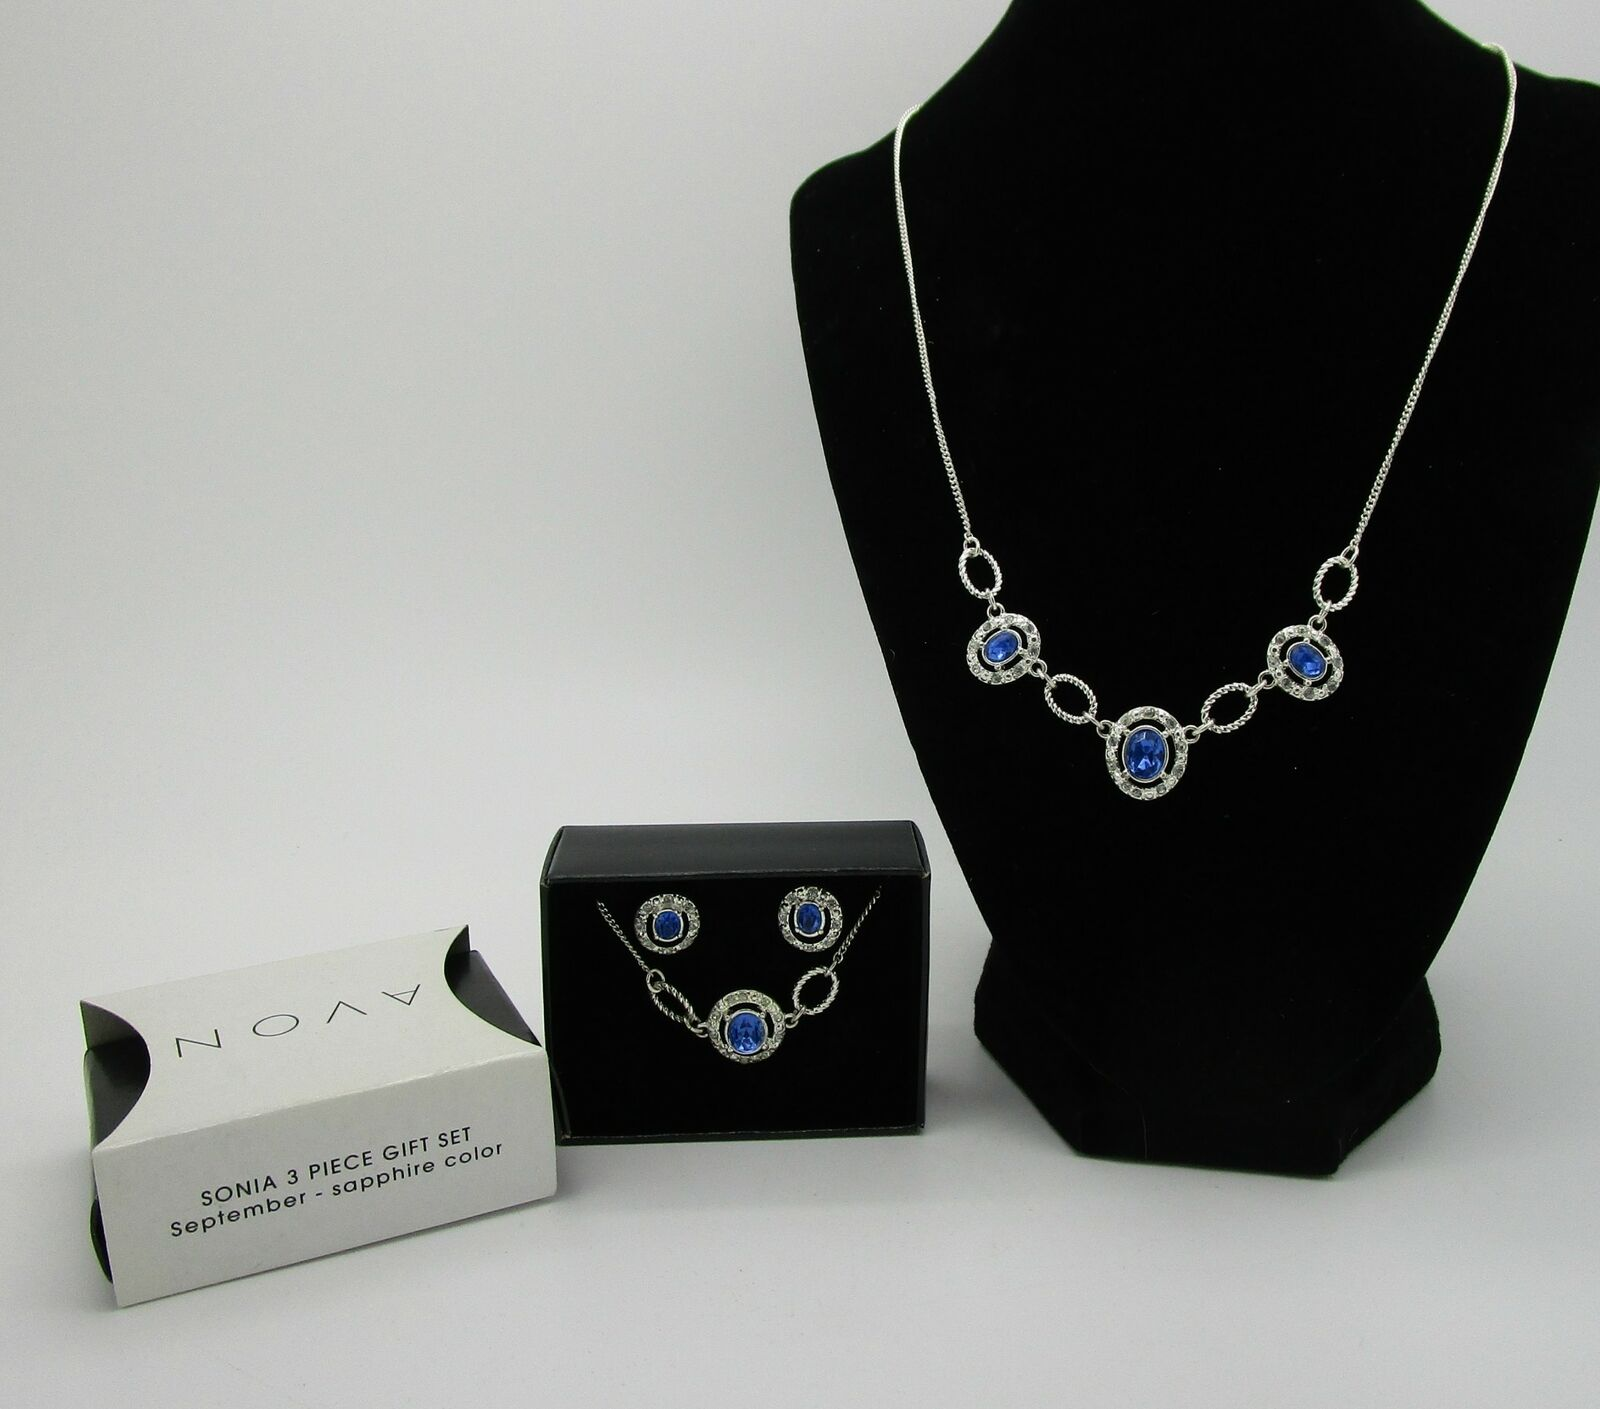 Sonia Matching set Necklace and Earrings